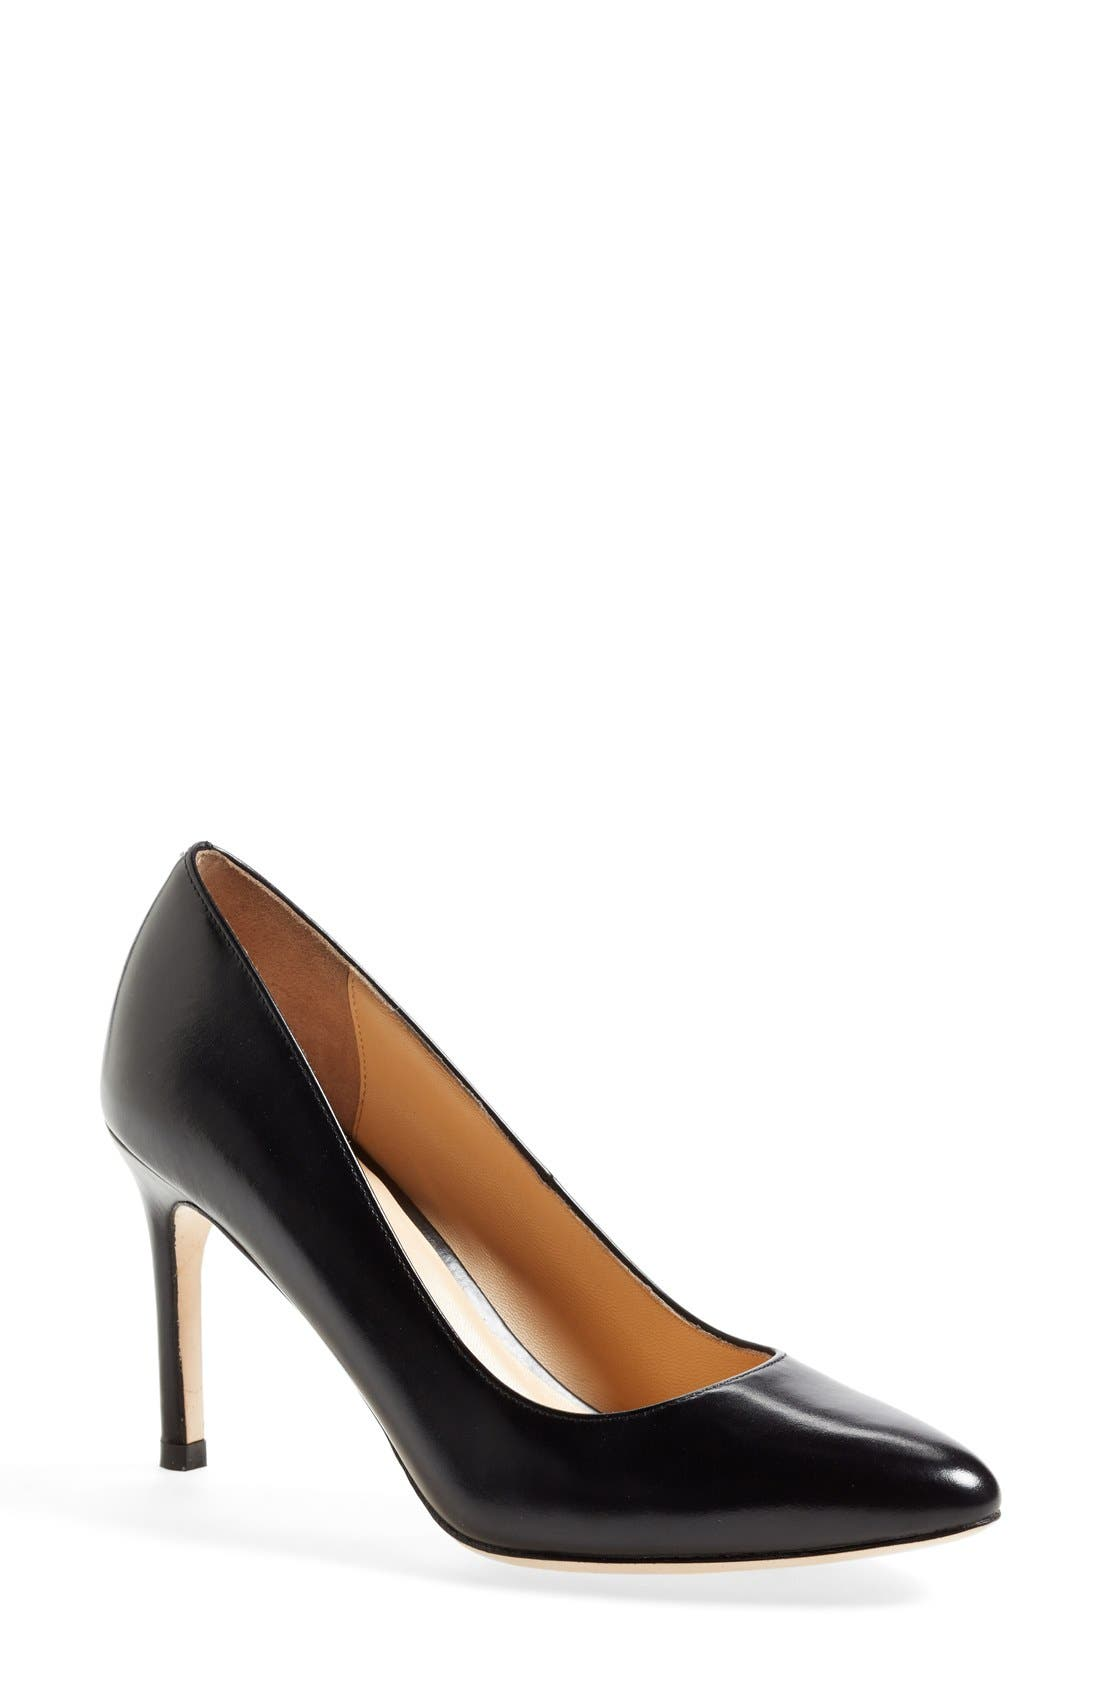 COLE HAAN 'Bethany' Leather Pump, Main, color, 001